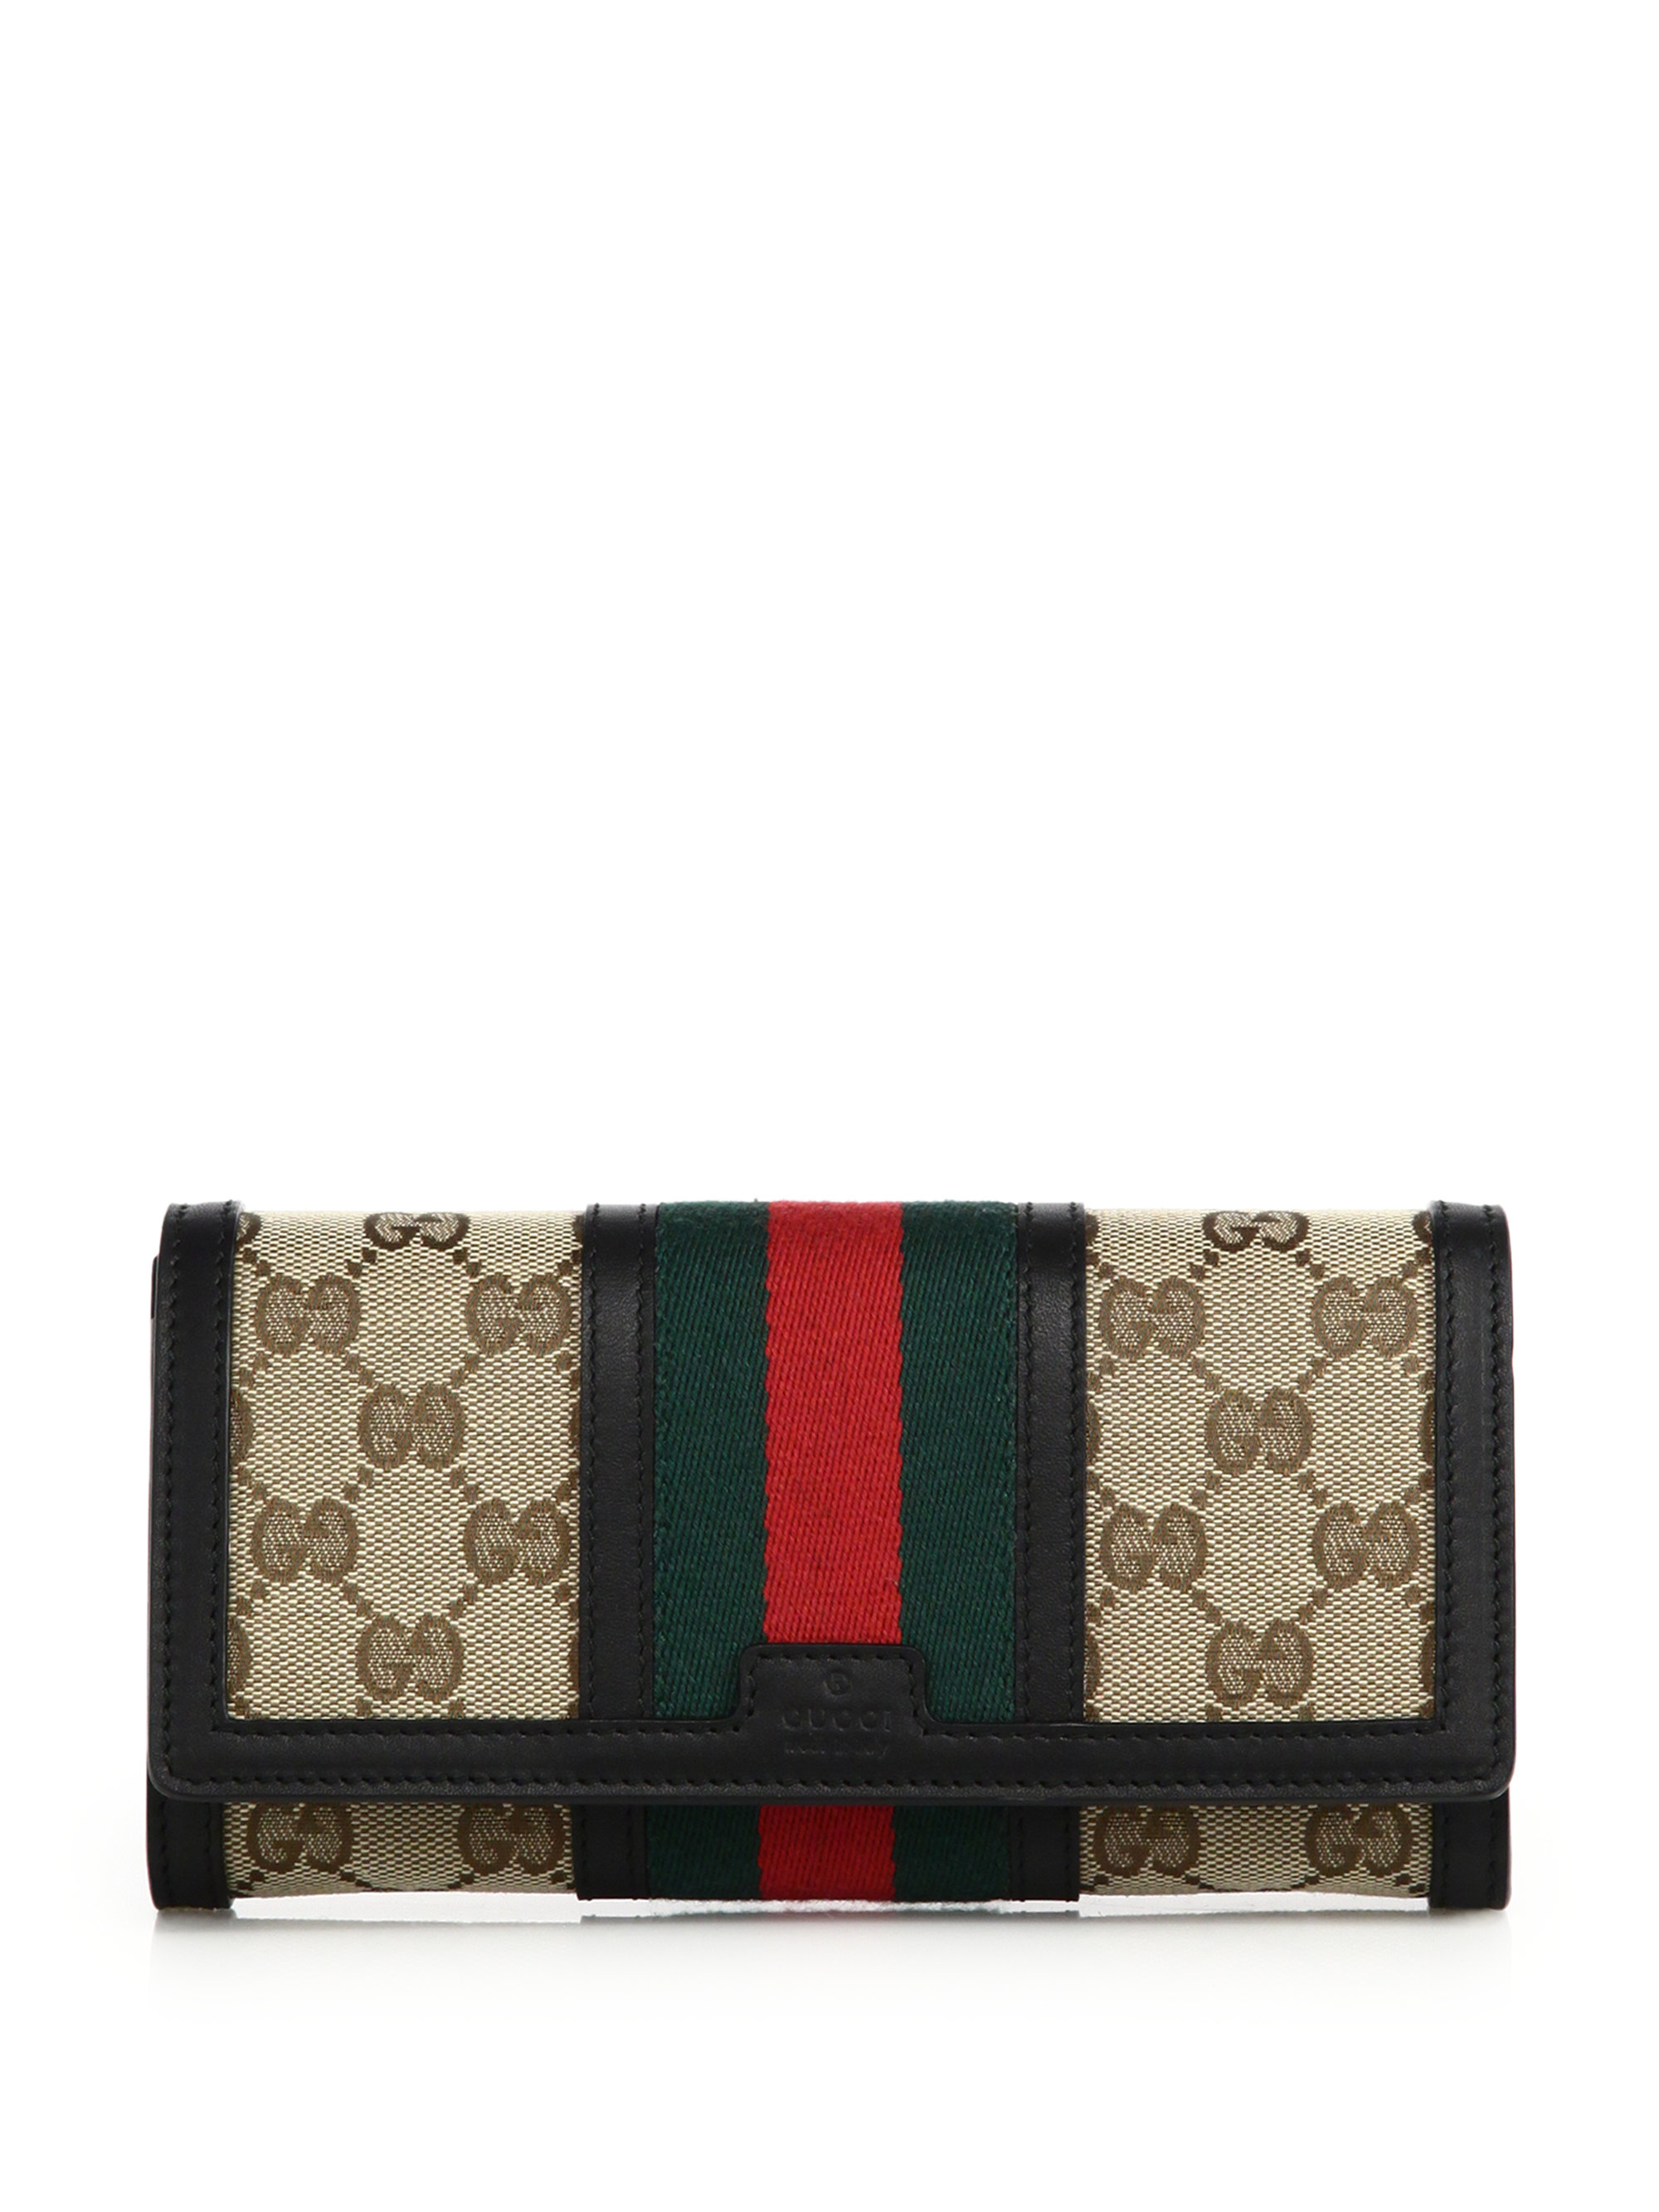 550461b83c0 Gucci Iconic Web & Gg Canvas Wallet in Black - Lyst